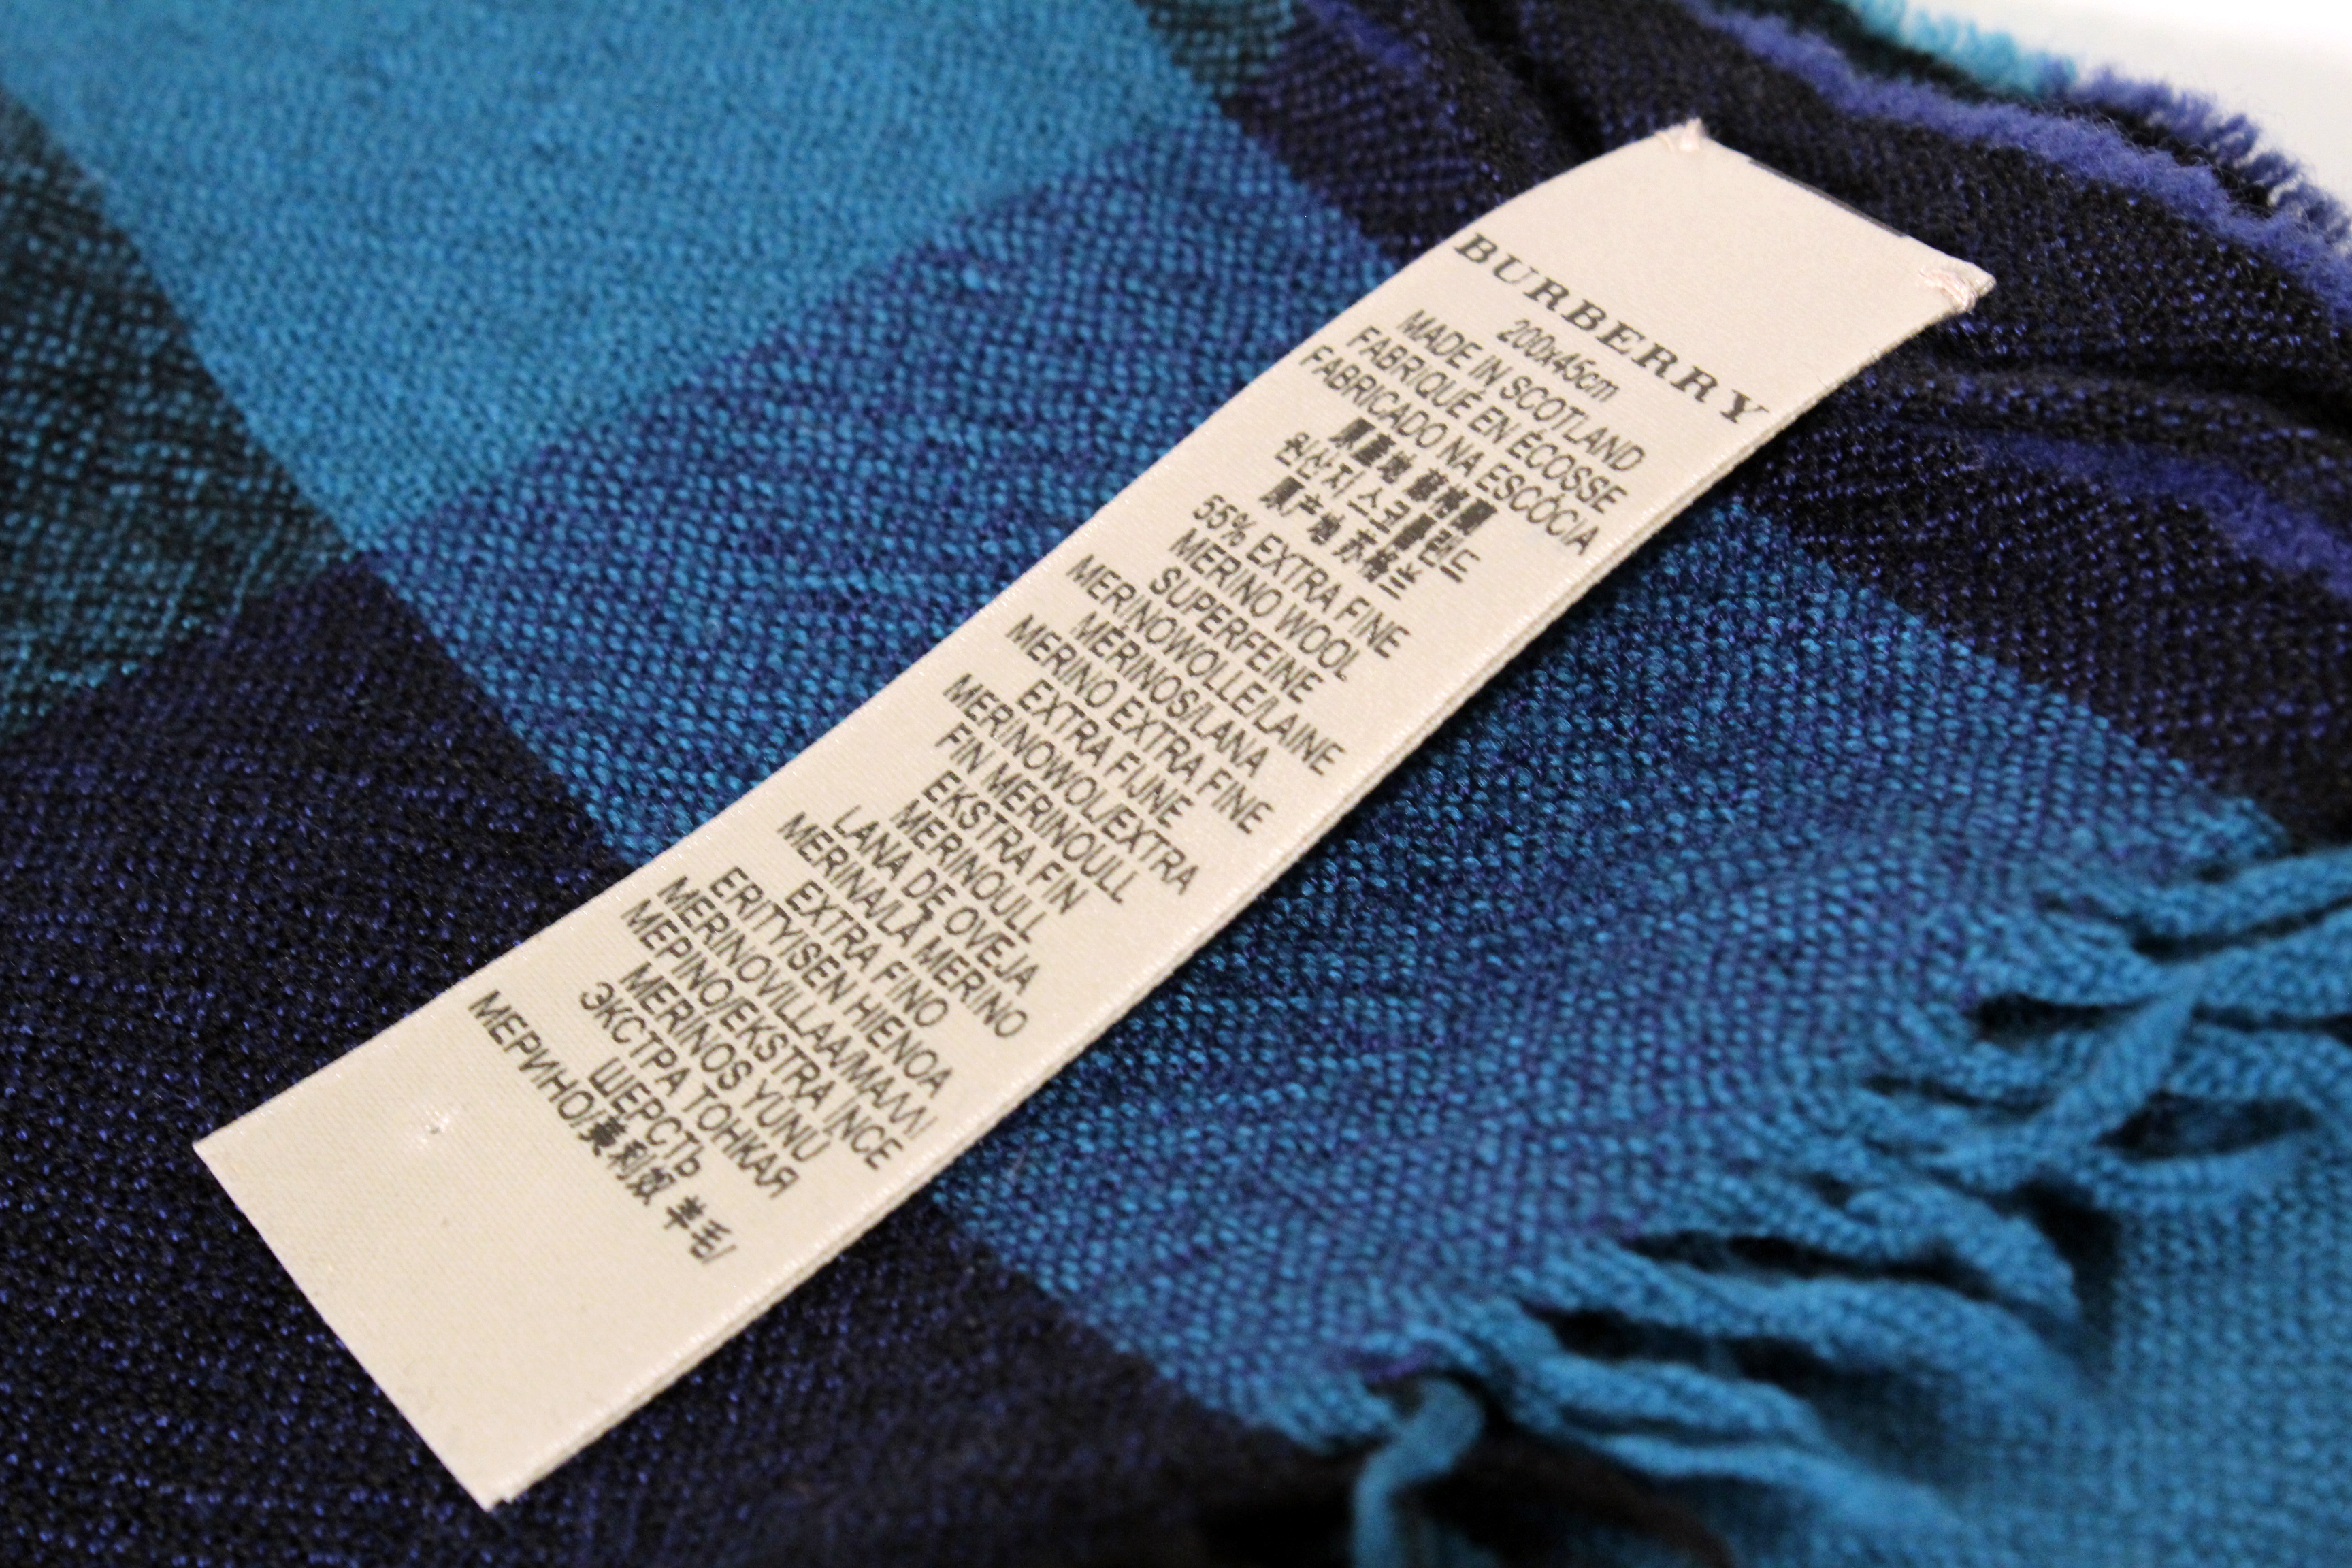 burberry scarf outlet sols  BURBERRY-Blue-Giant-Check-Cashmere-Wool-Scarf_63948Djpg